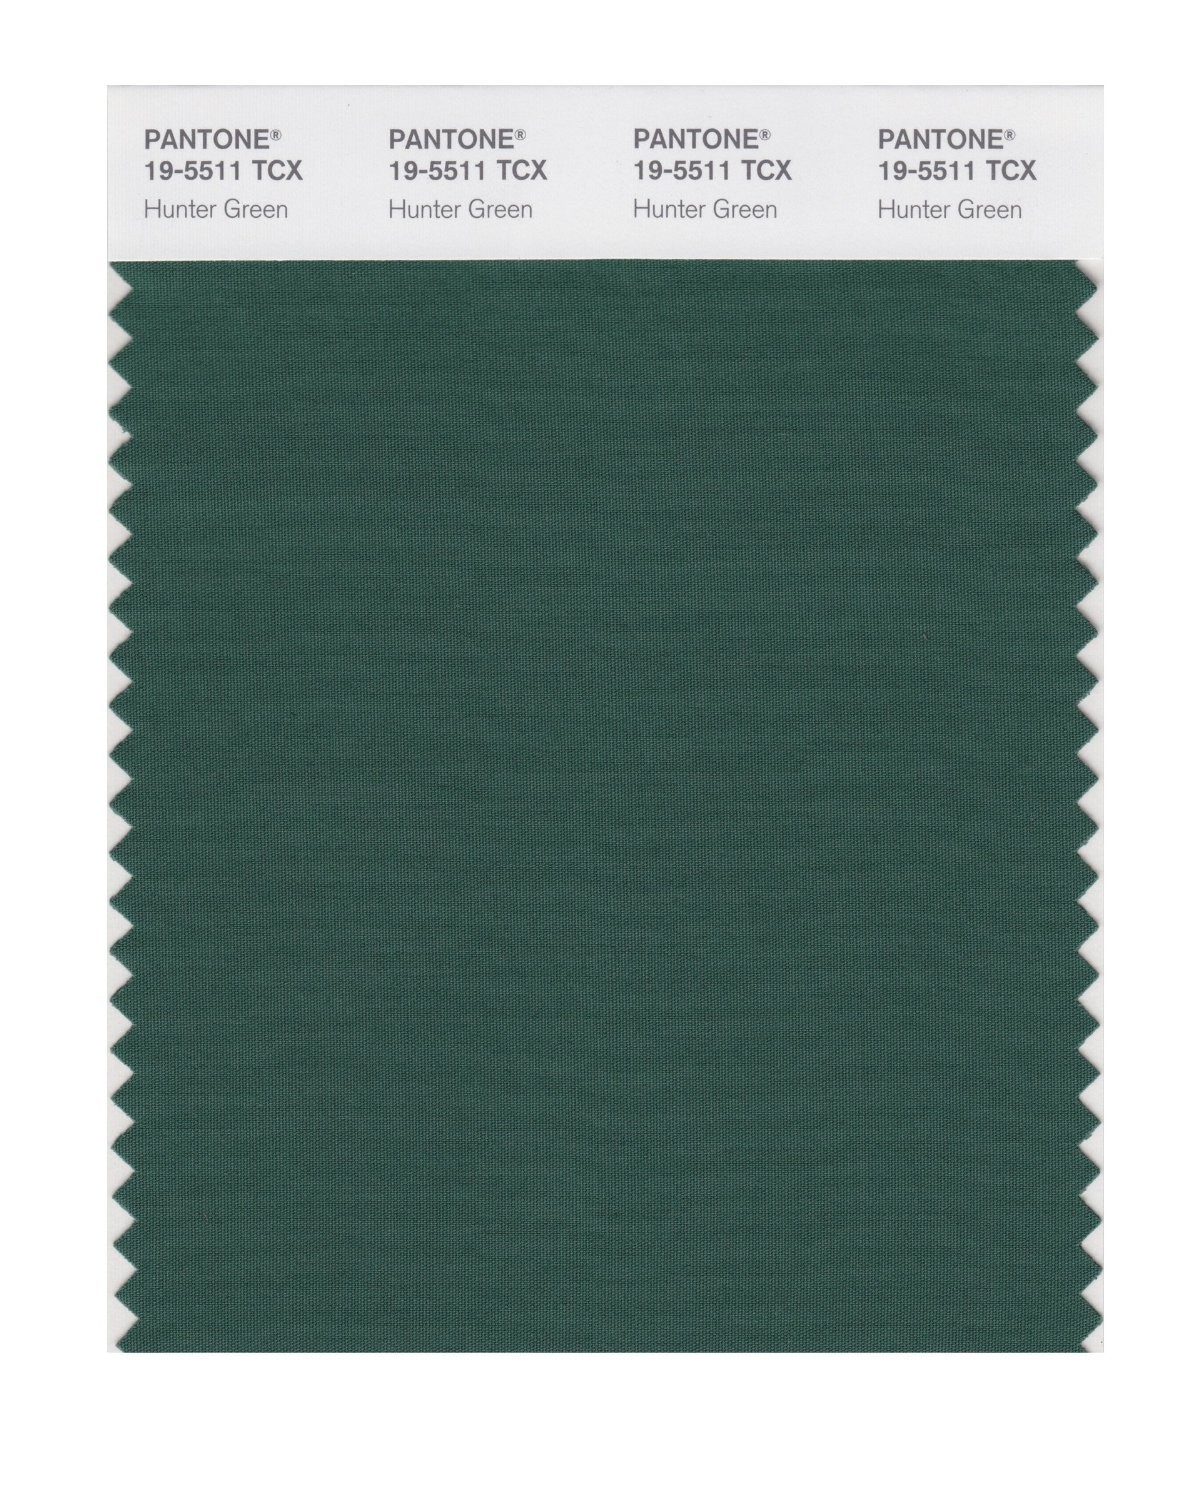 Pantone 19-5511 TCX Swatch Card Hunter Green